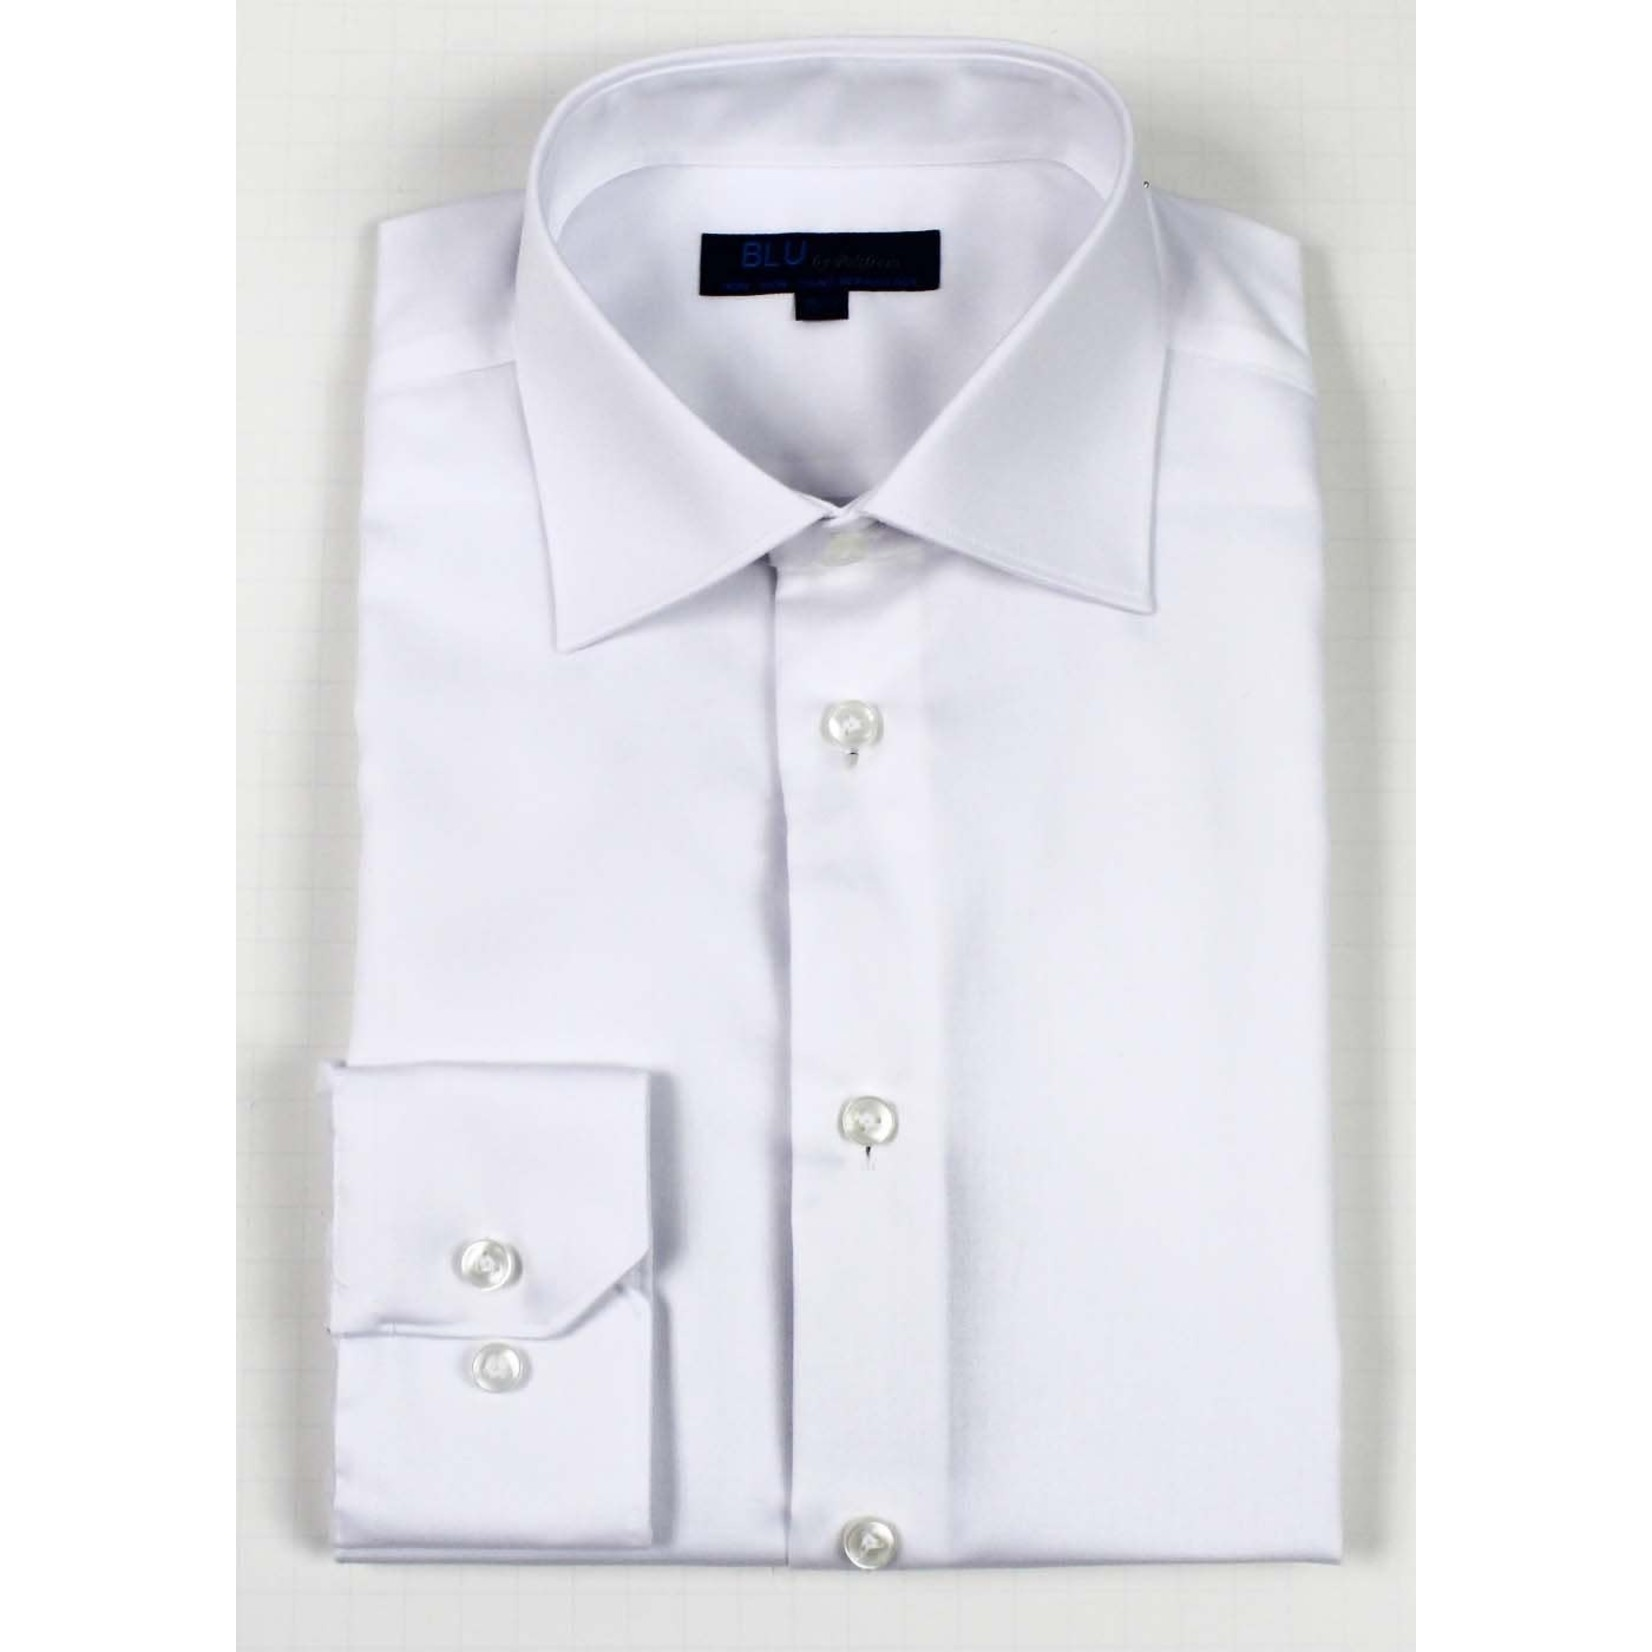 Polifroni Blu-360M Miami Non-Iron Dress Shirt 01 White